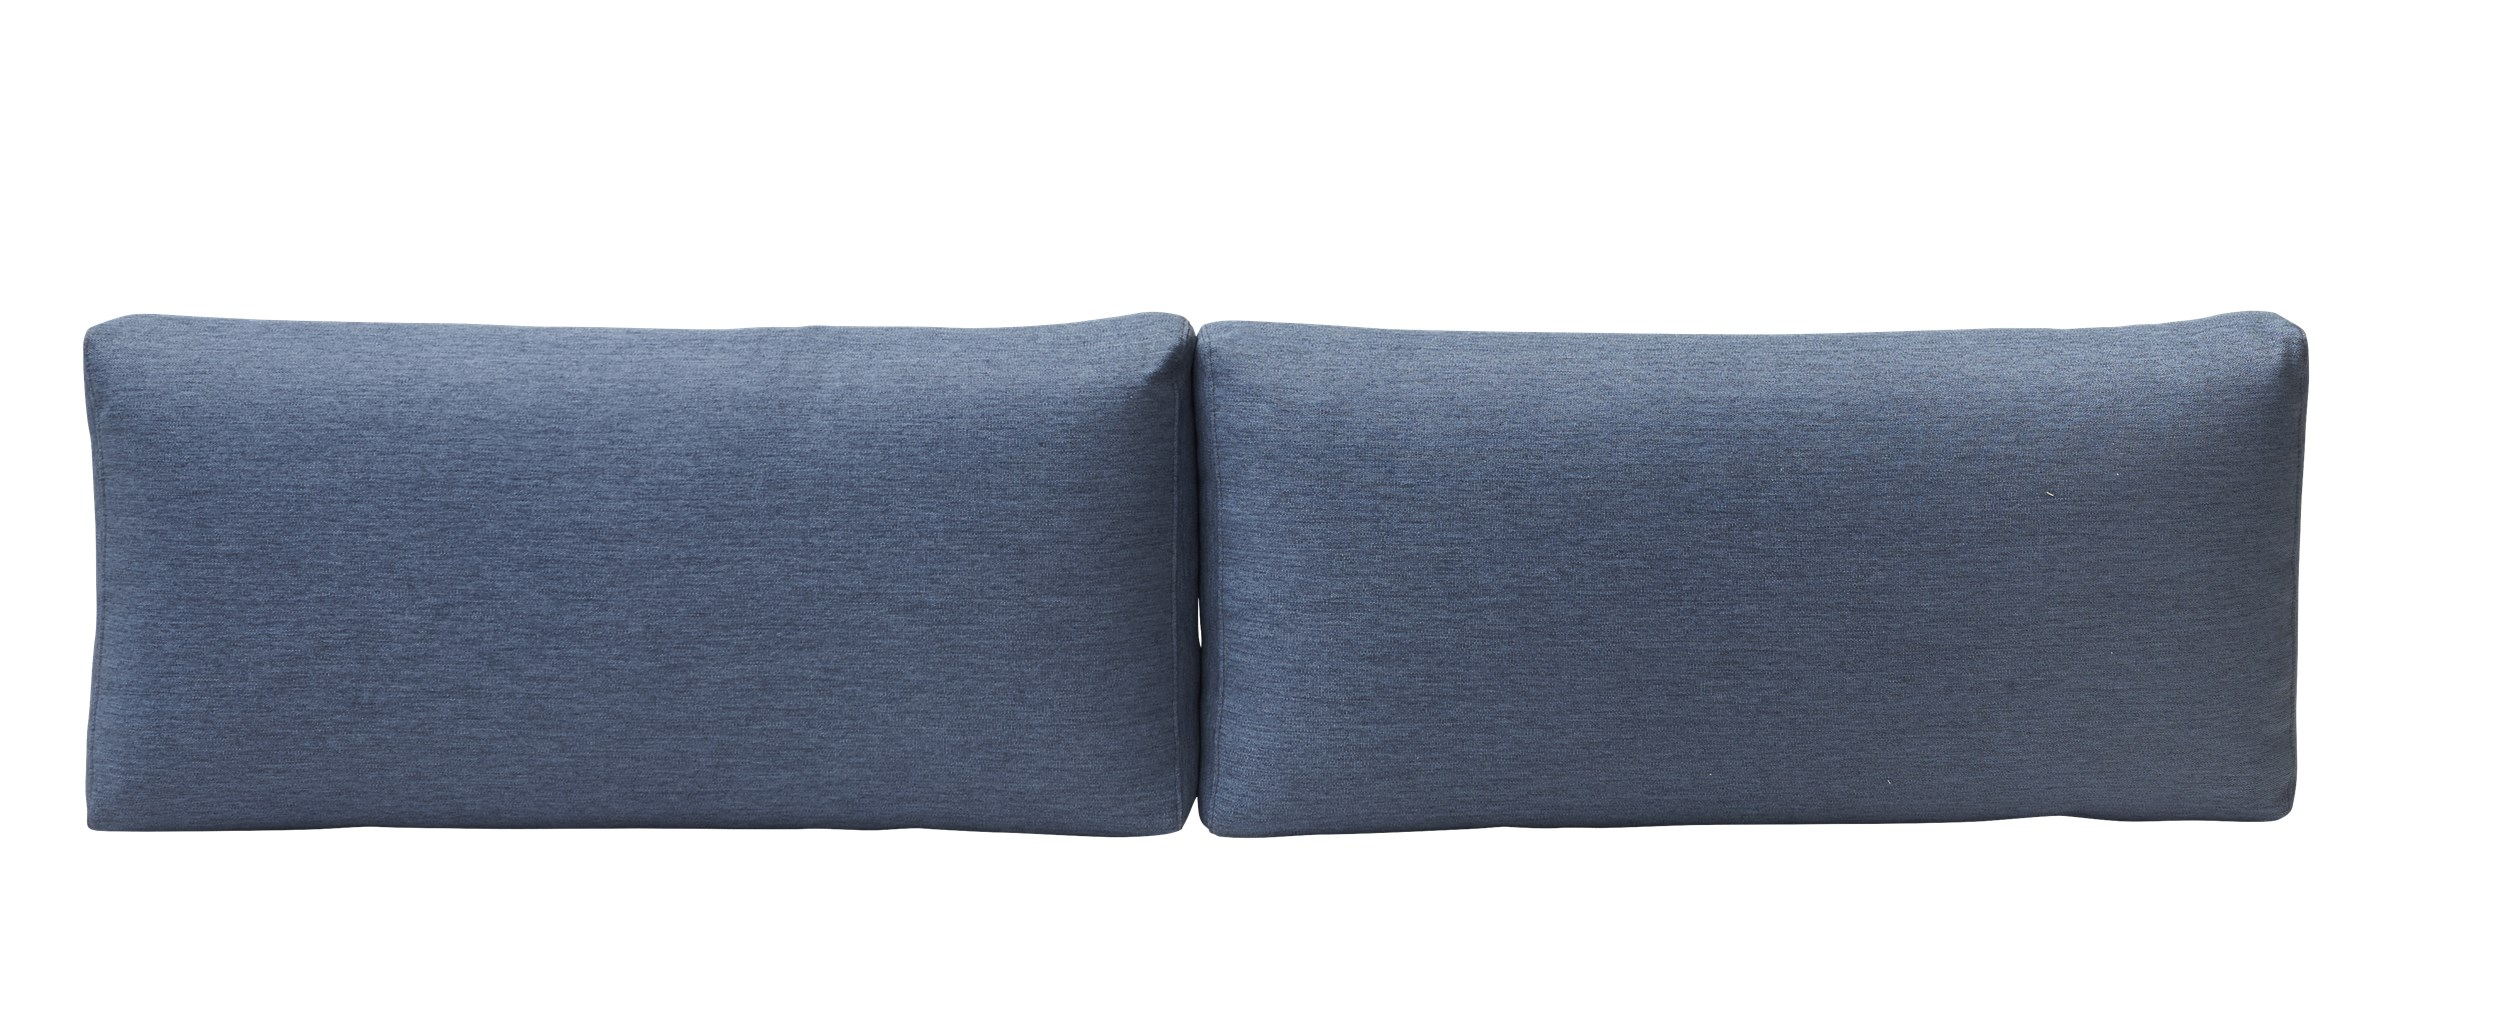 Innovation Living - Tubular Armpude - Soft 558 indigo